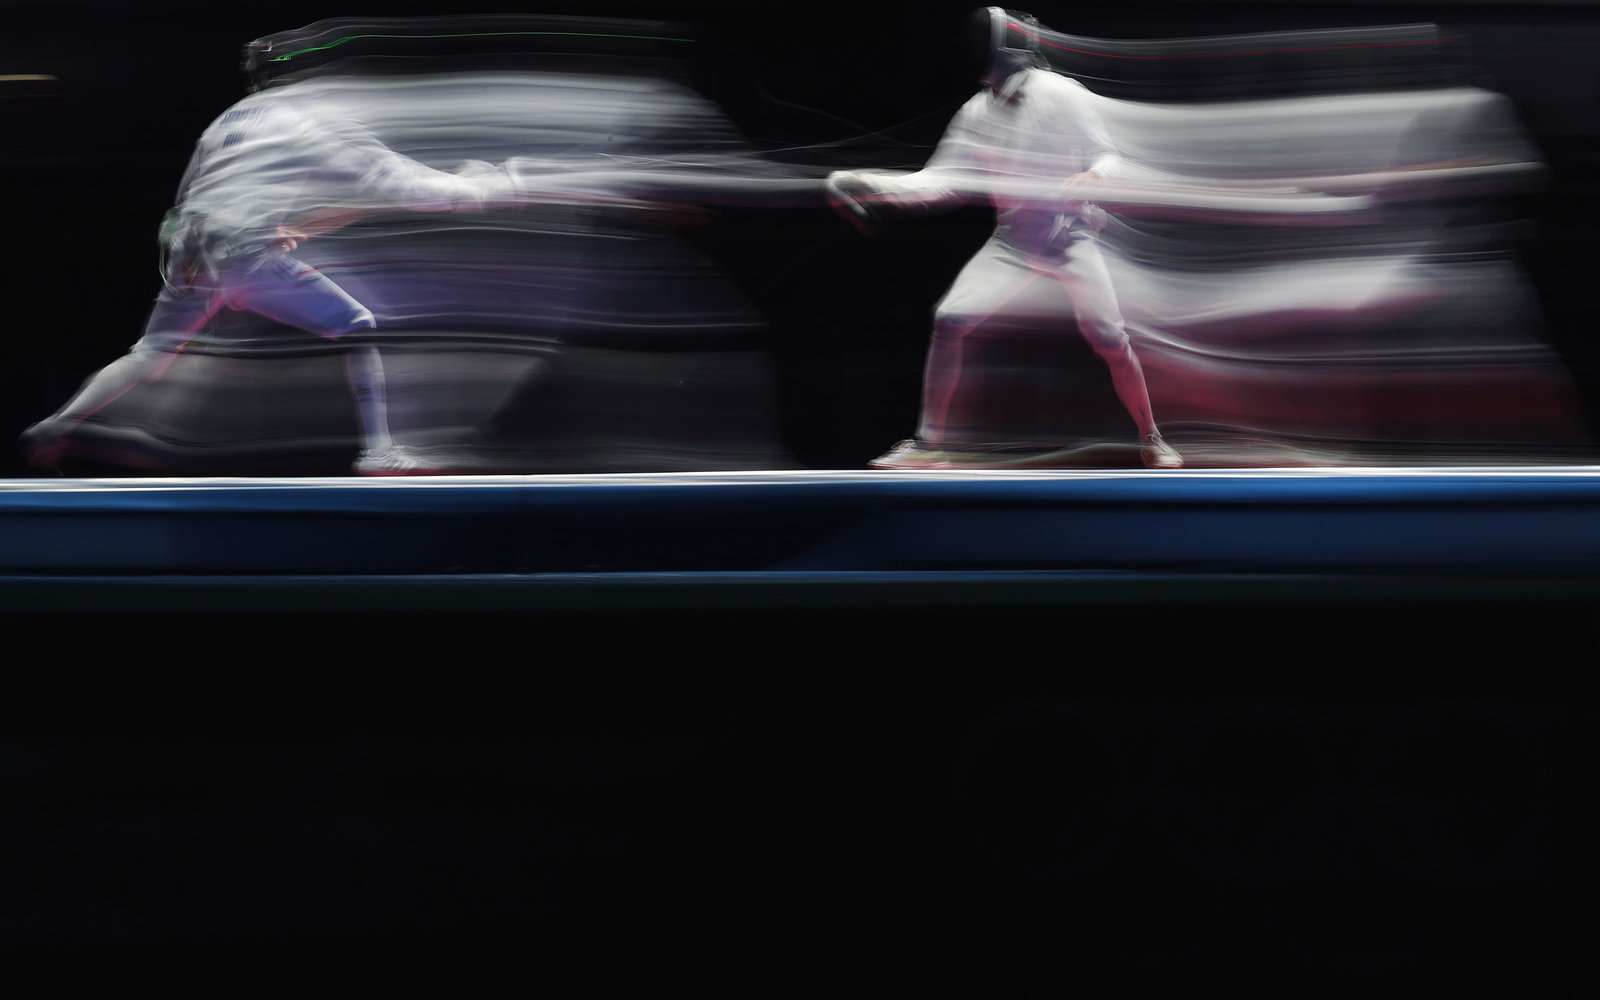 The Most Spectacular Photos of the Rio Olympics